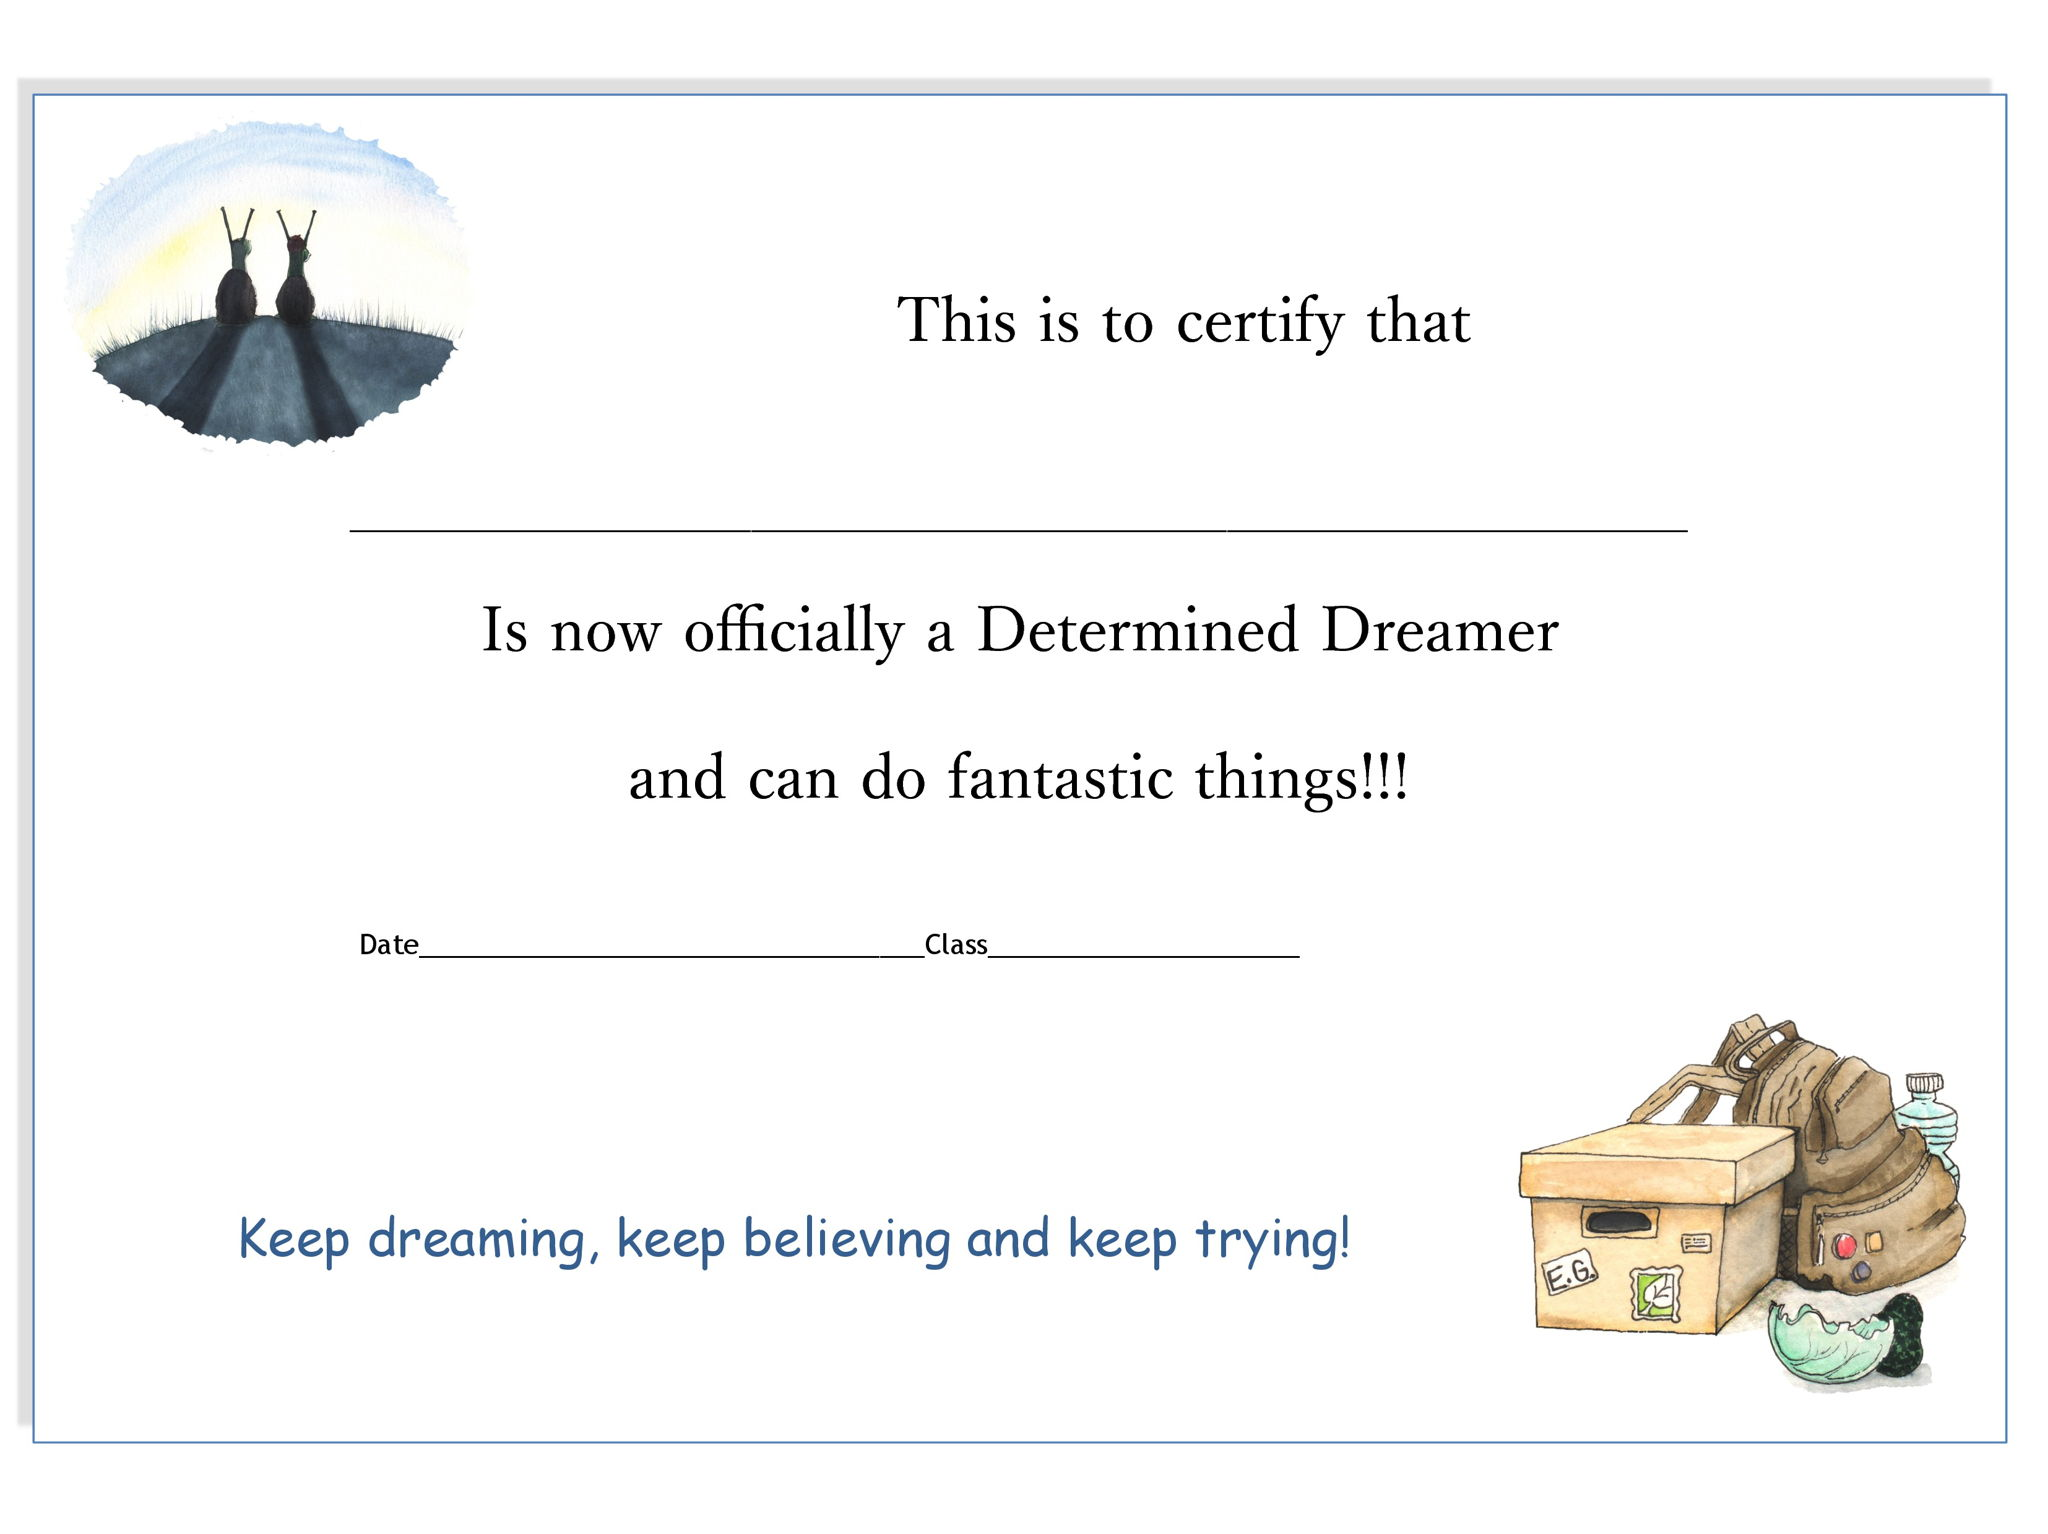 I am a Determined Dreamer - Certificate